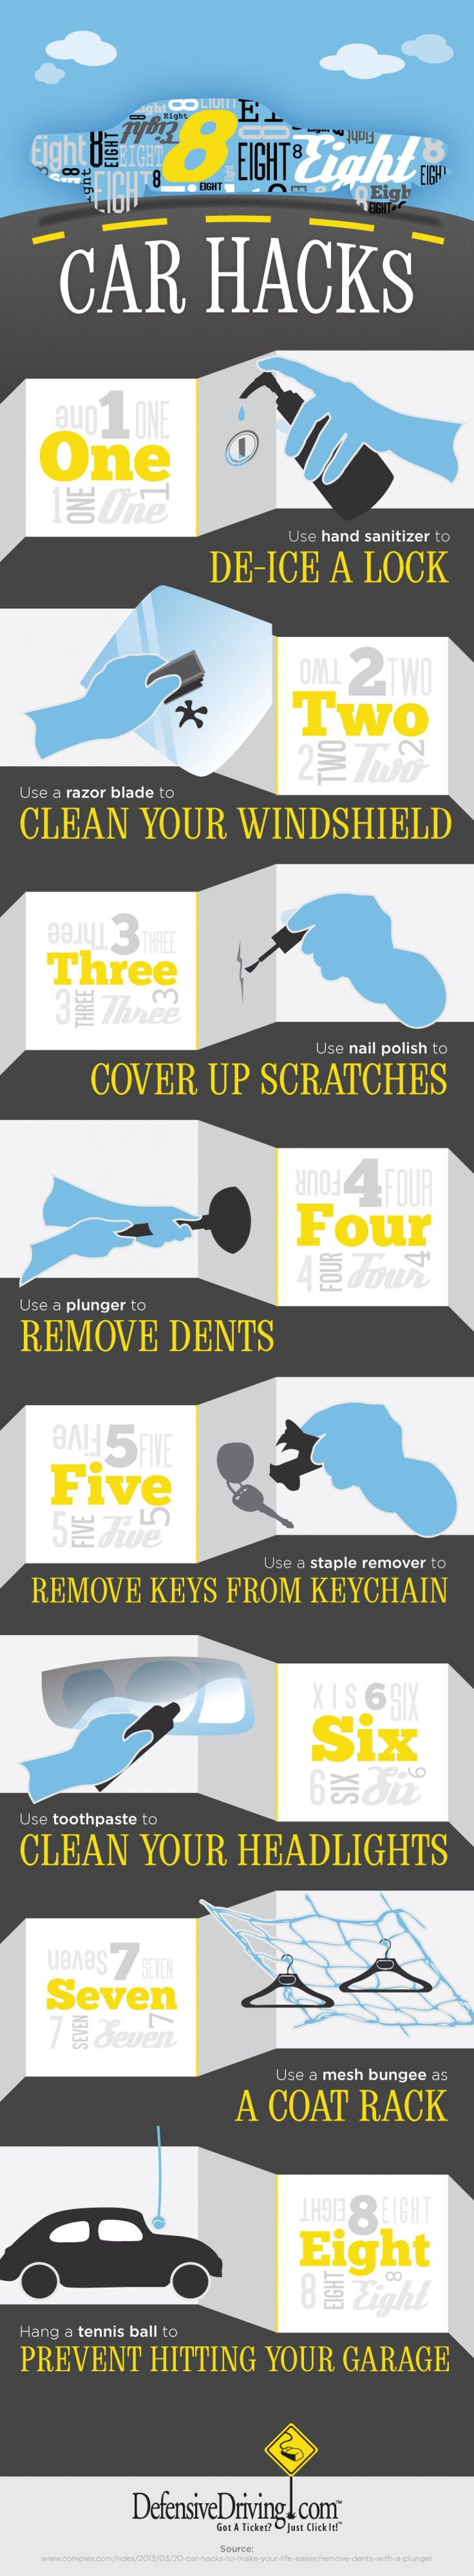 8 Car Hacks That Are Sure to Come in Handy Infographic